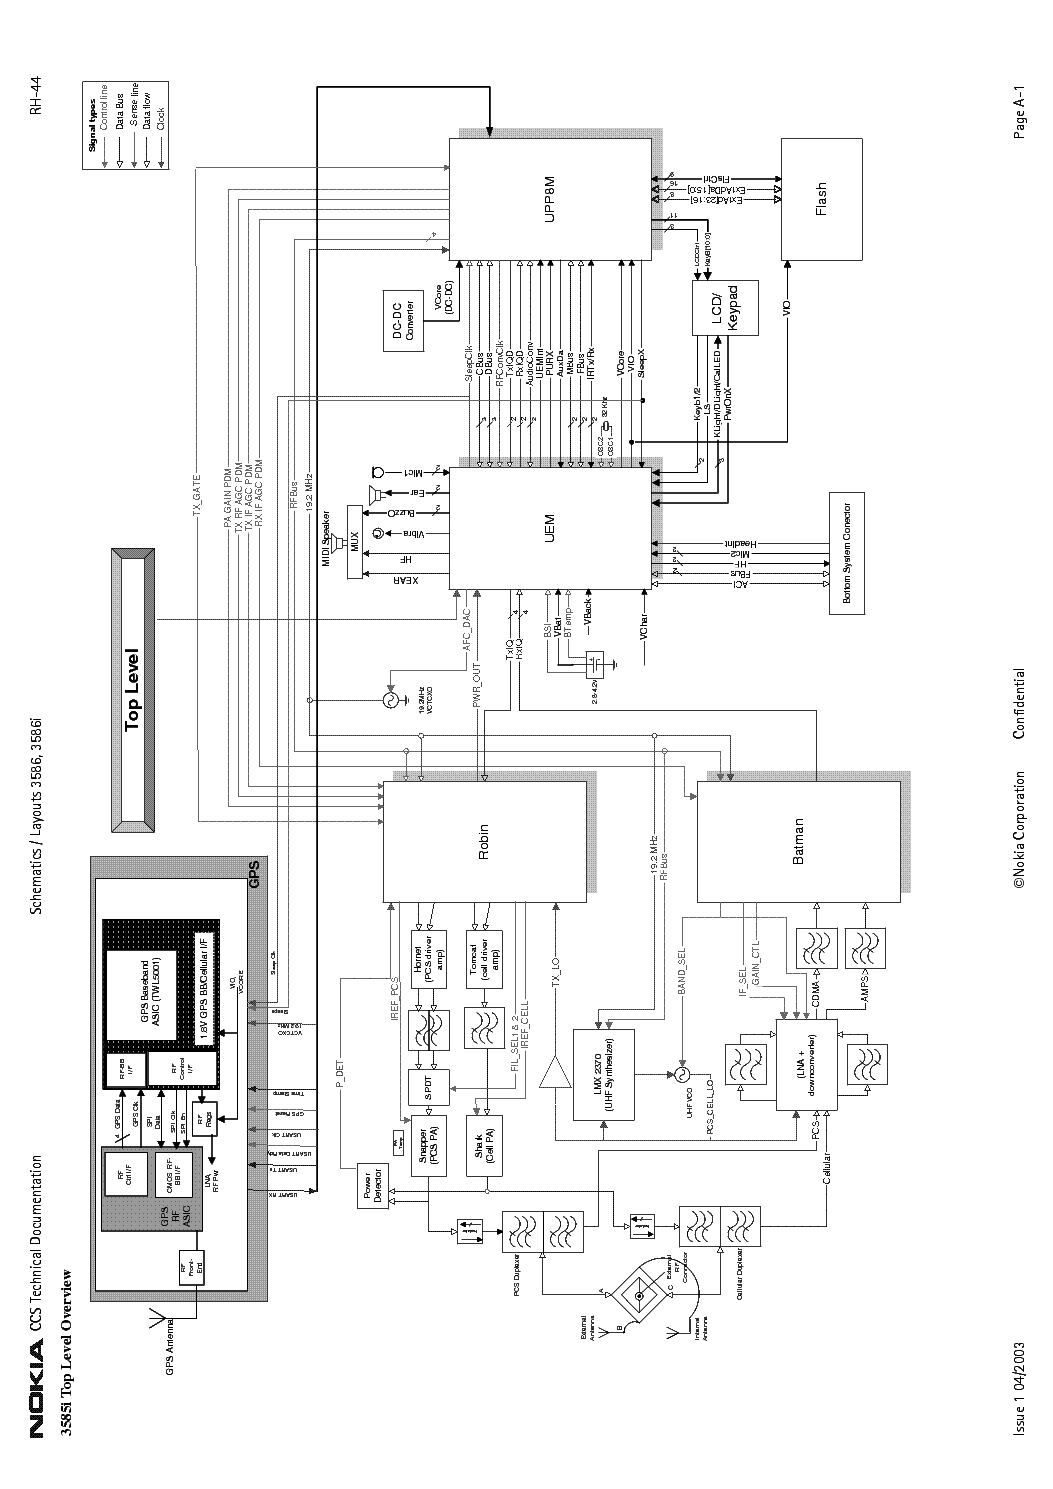 NOKIA 3530-RH-9-SCHEMATICS-REV2.0 Service Manual free